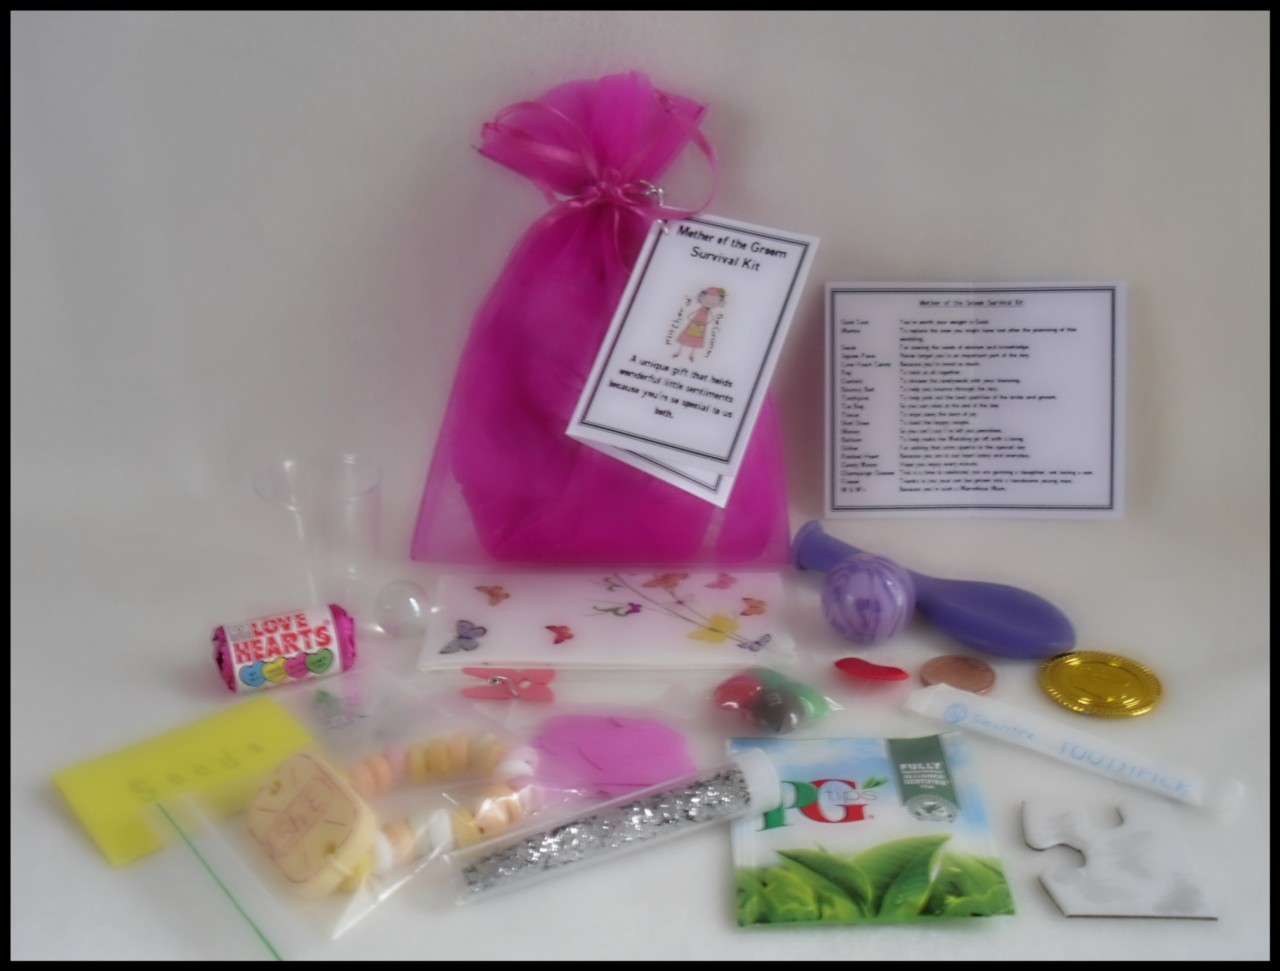 Quirky Wedding Gifts Uk: Mother Of The Groom Novelty Survival Kit. An Unusual Fun